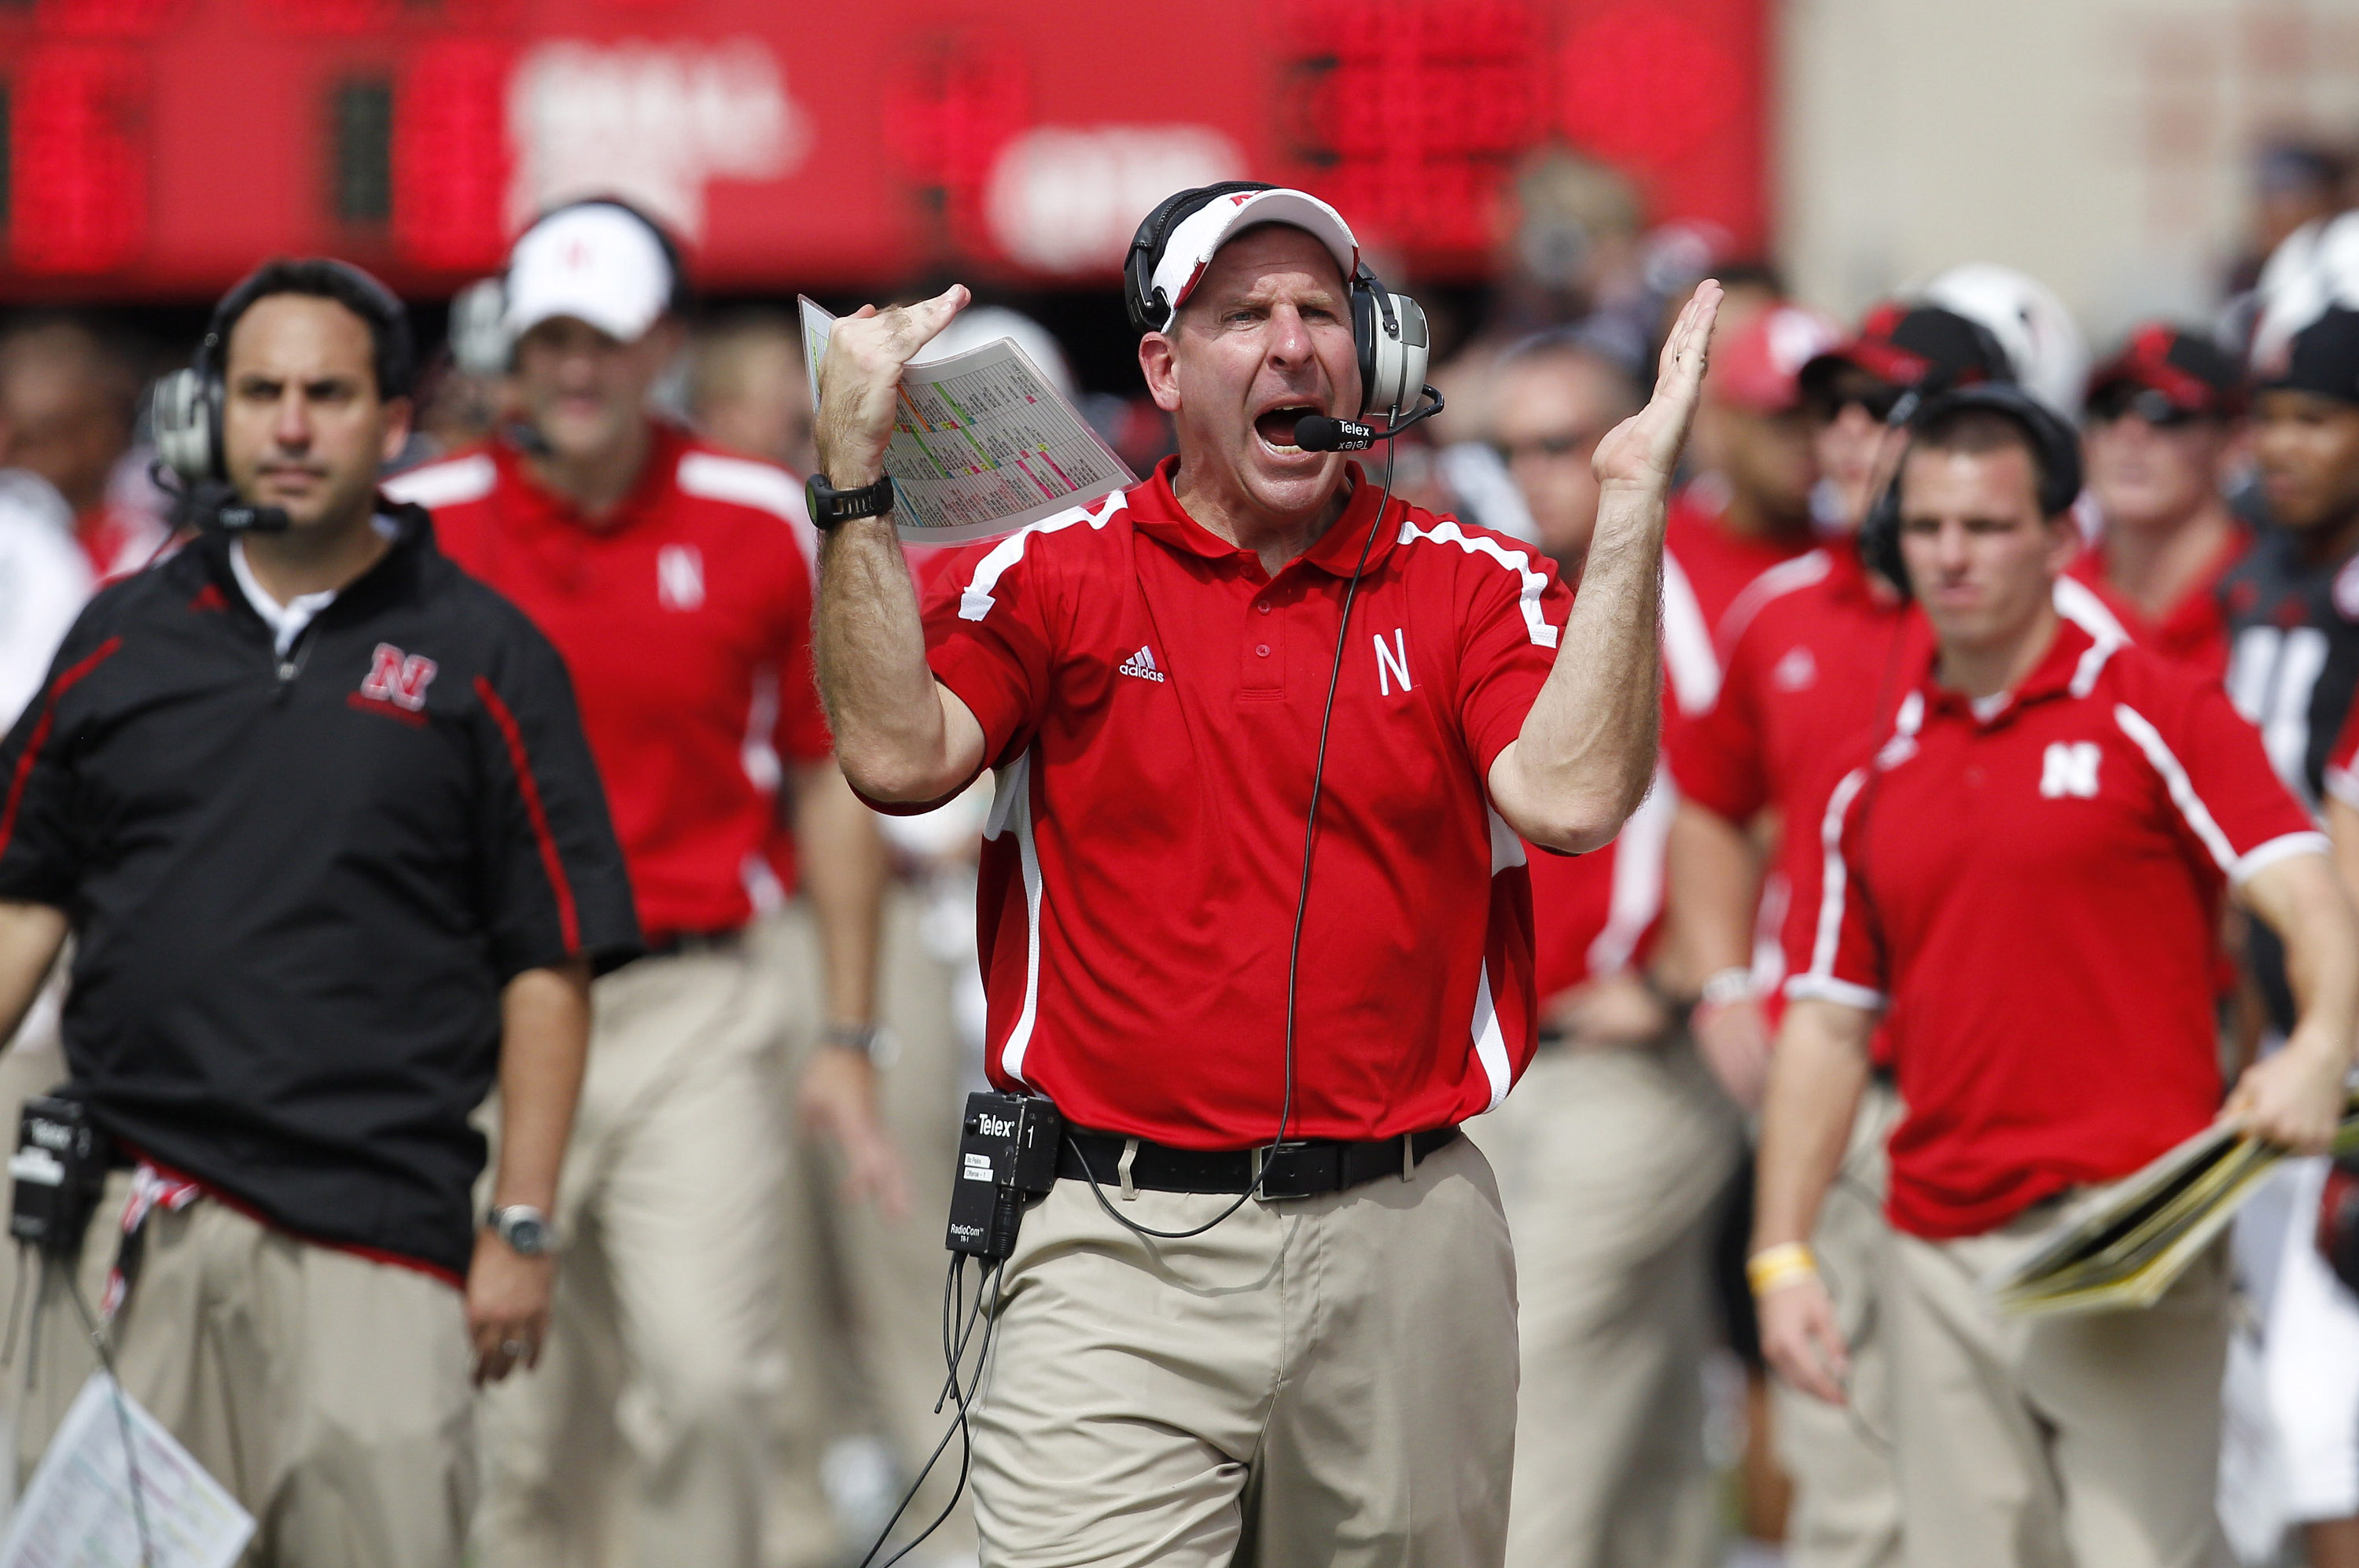 Bo Pelini's profanity-laced tirade has the Cornhuskers head coach on the hot seat. (USA TODAY Sports)